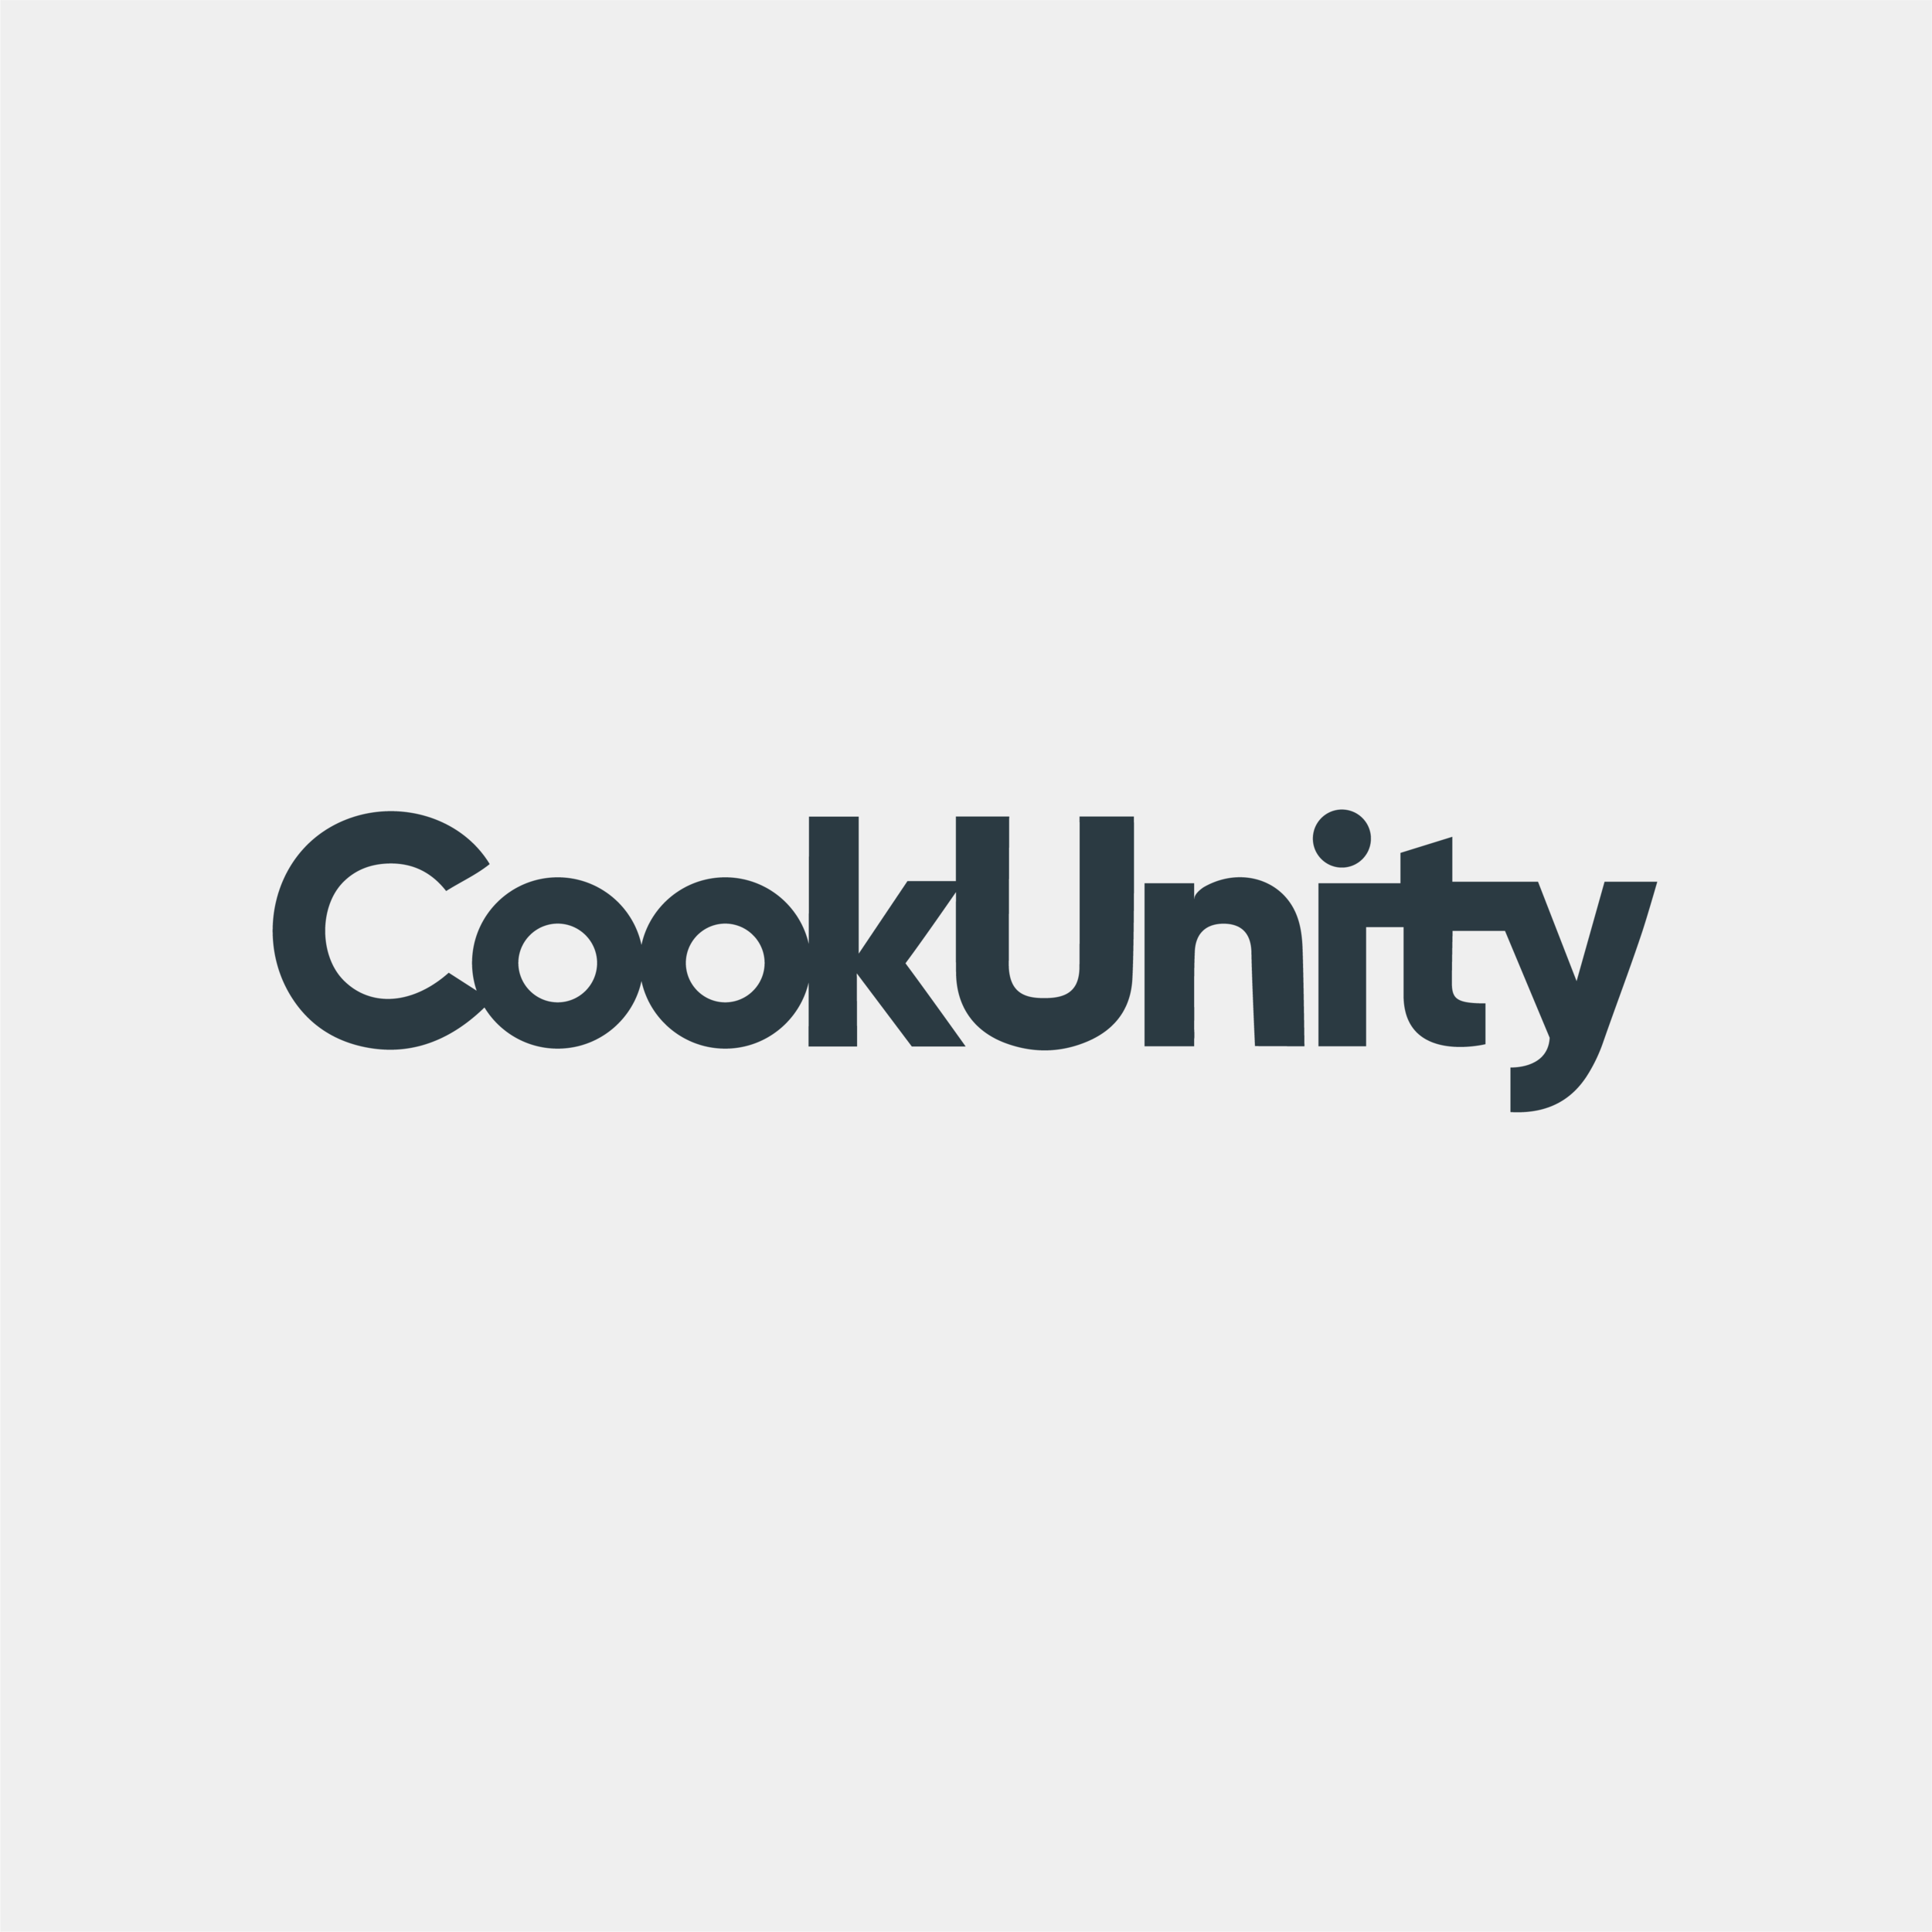 CookUnity.png